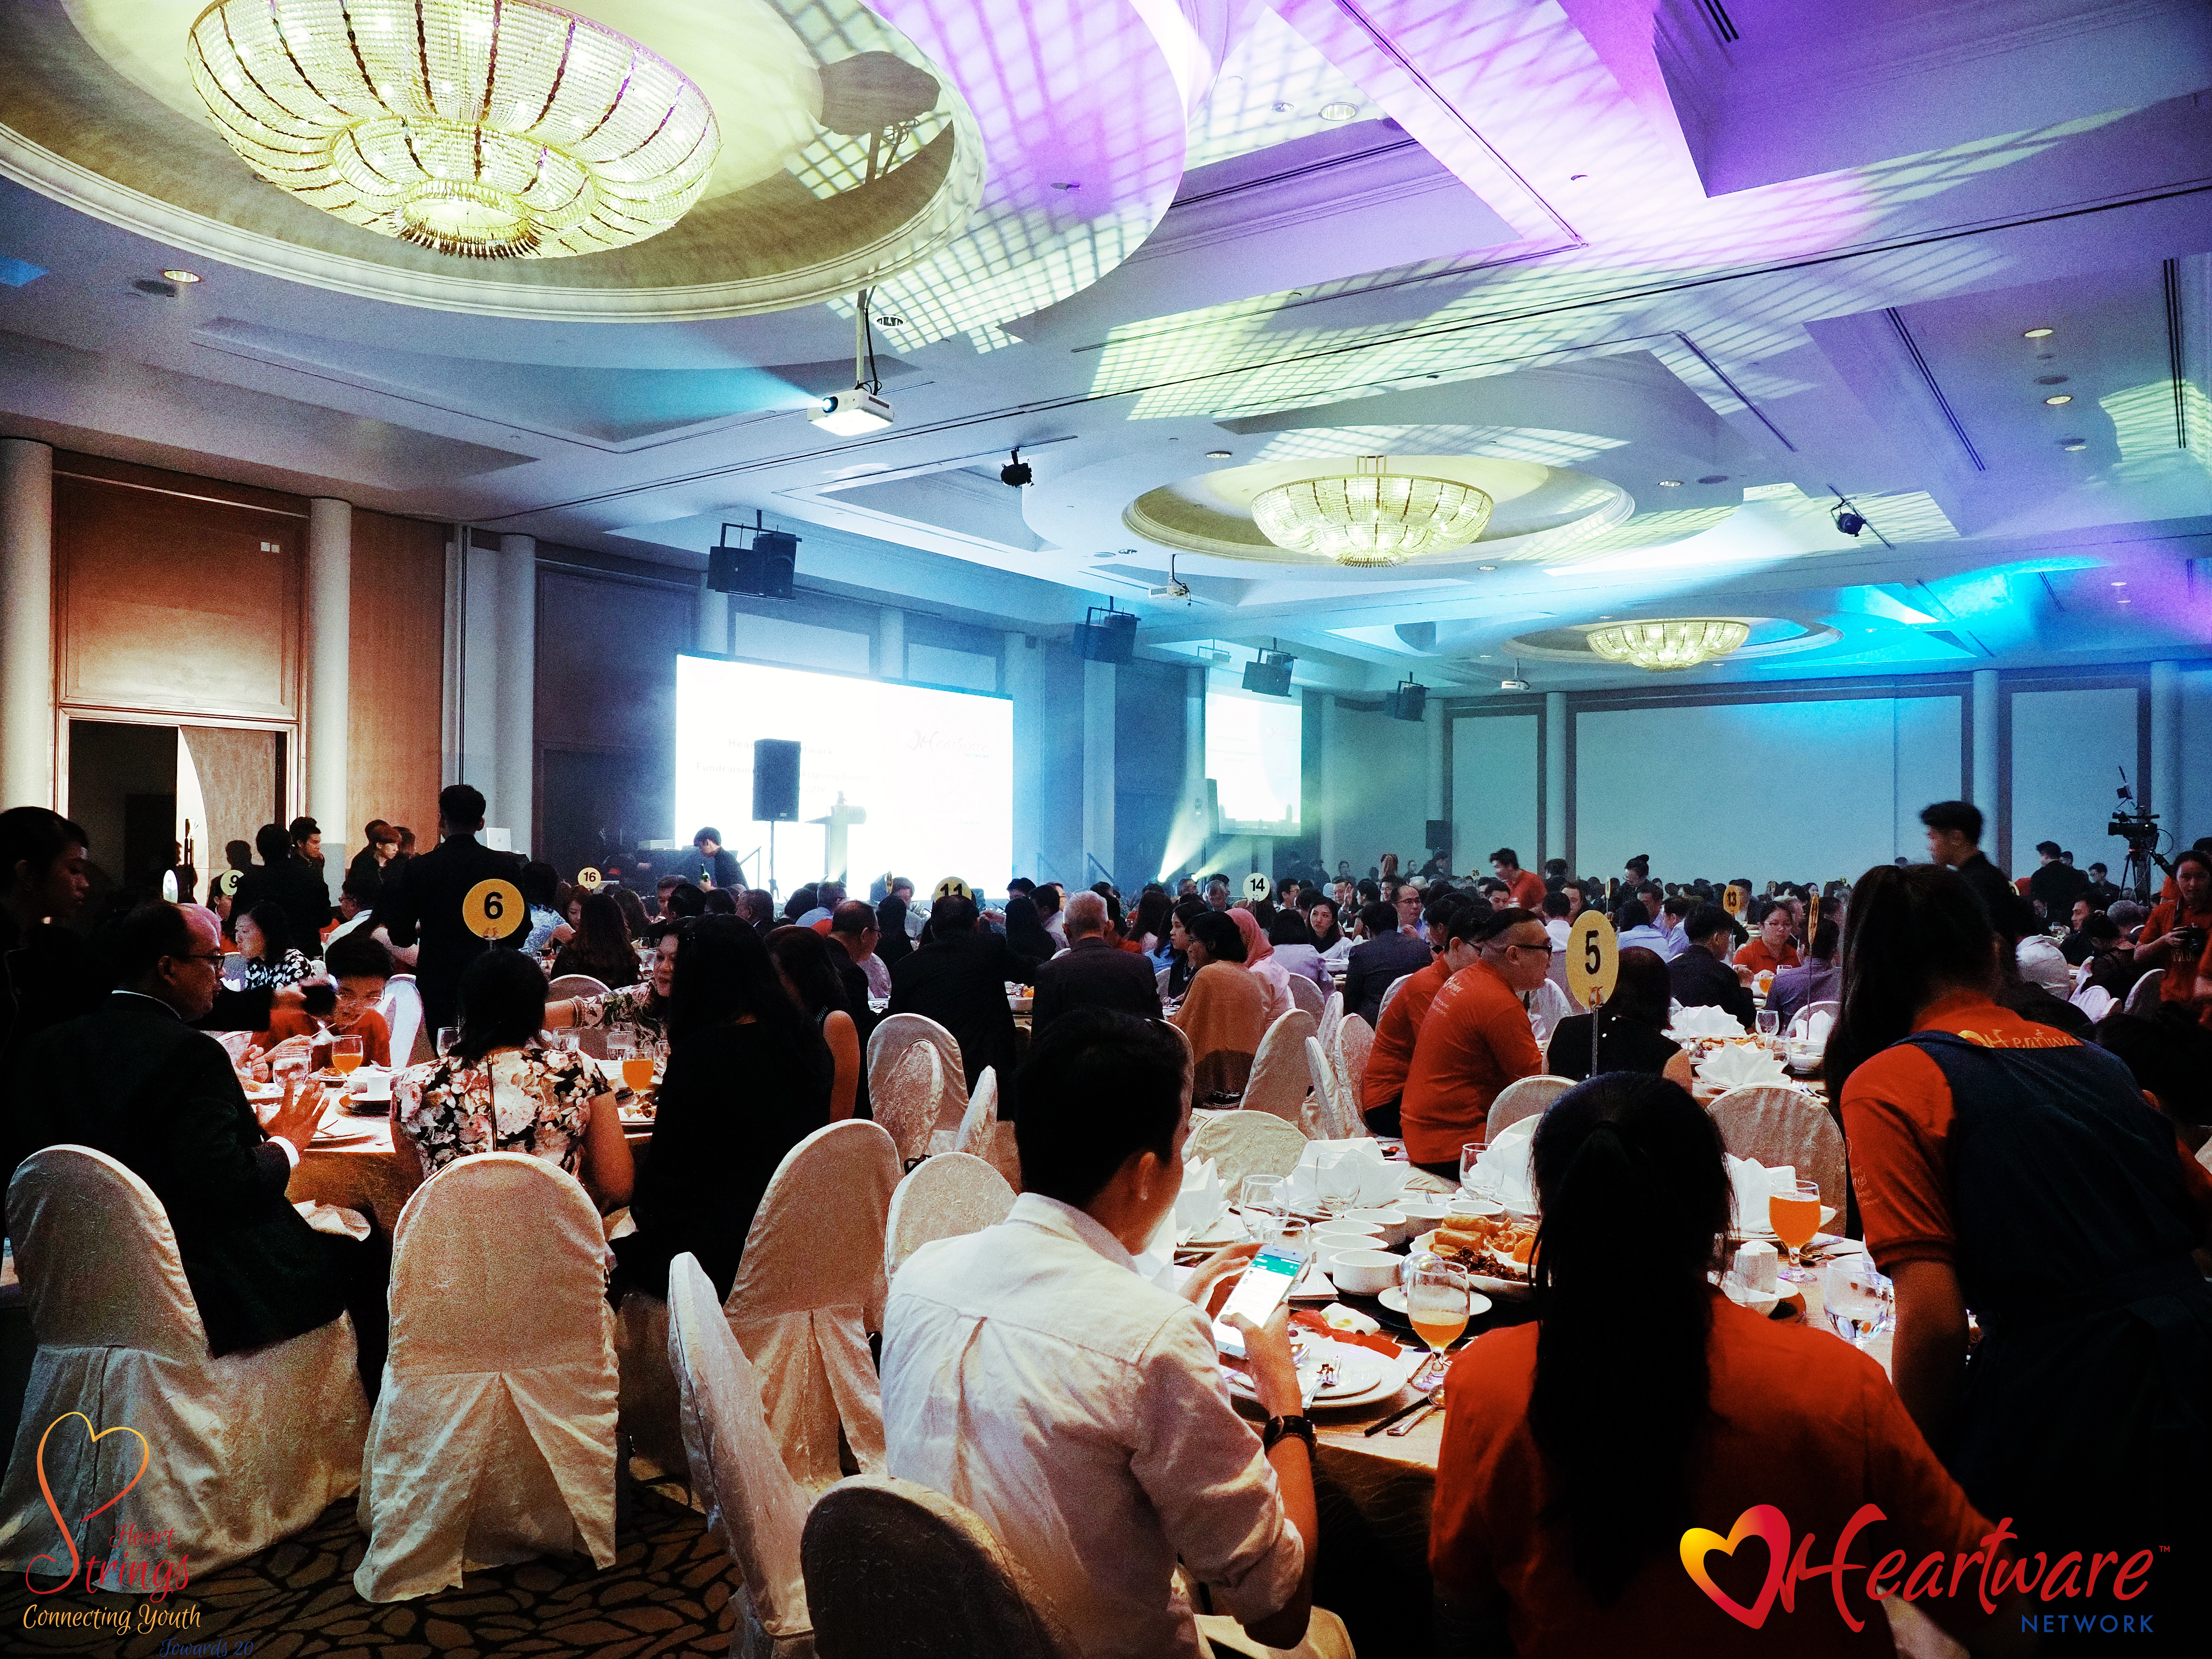 """""""Heart Strings, Connecting Youth"""": Heartware Network's 19th Annual Fundraiser Celebrates the Spirit of Unity and Compassion"""